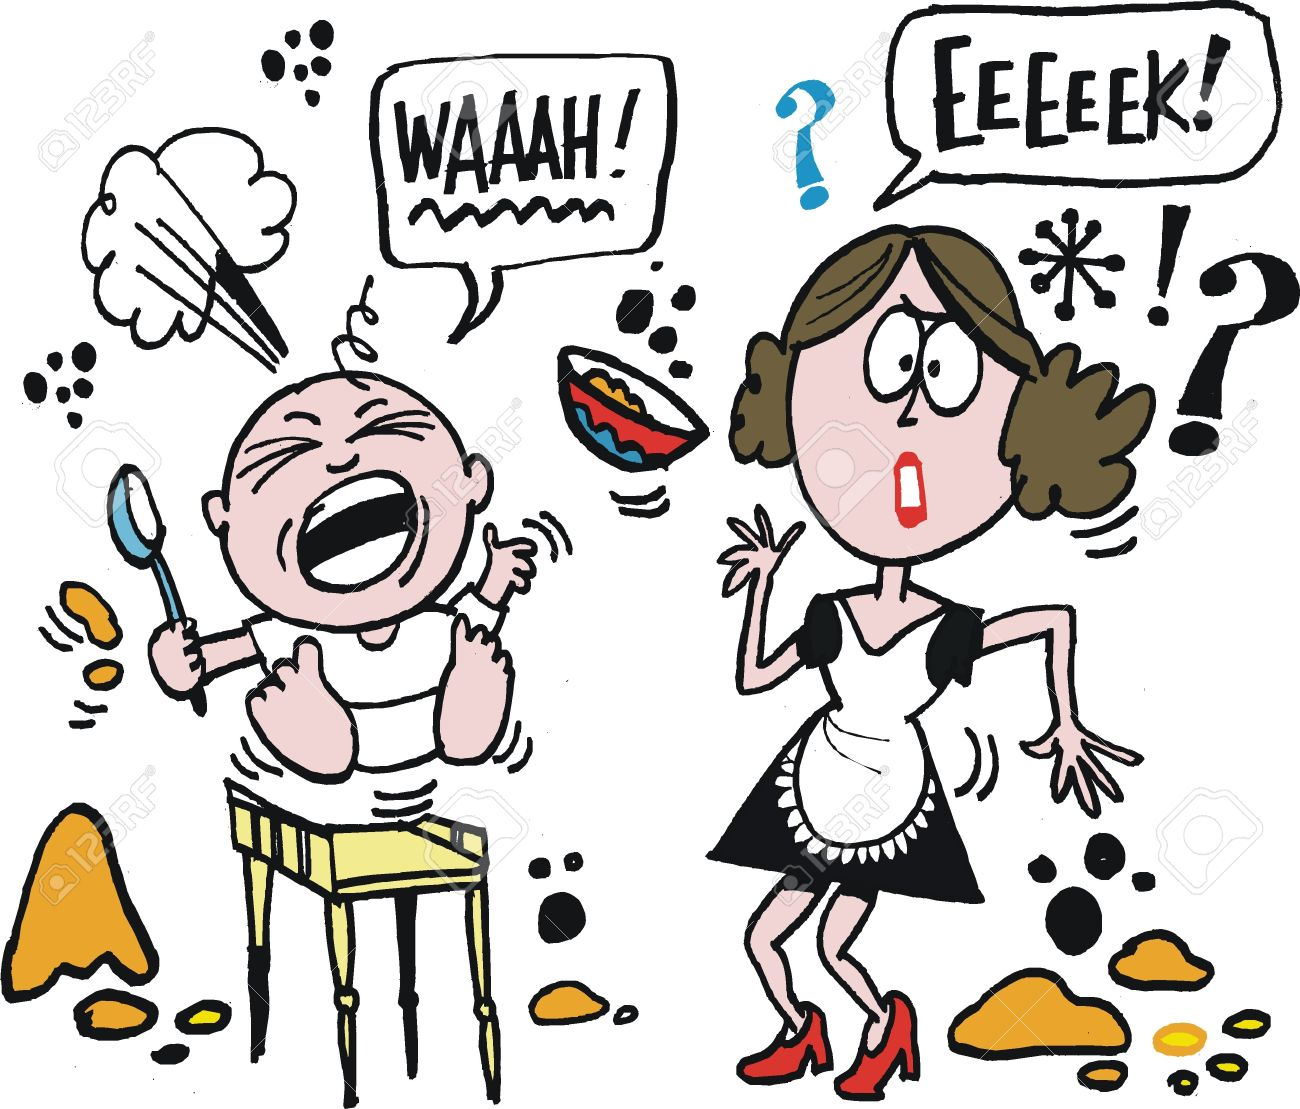 20413519-Vector-cartoon-of-annoyed-mother-with-crying-baby-Stock-Vector-throwing-food-baby